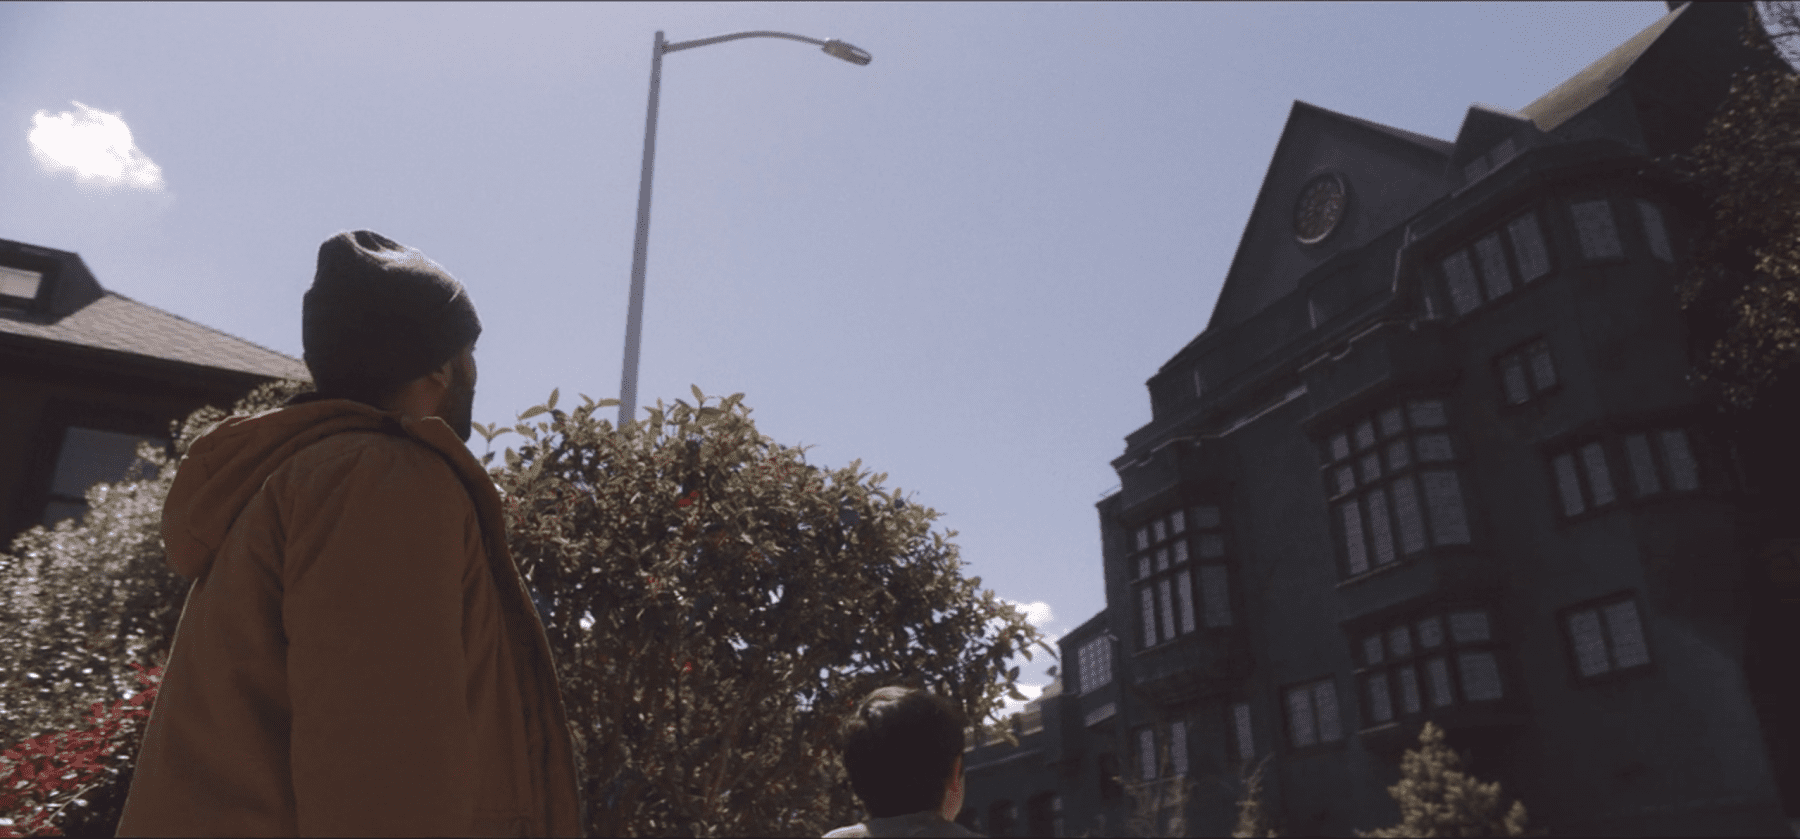 Karim Washington (Kingsley Ben-Adir) looks at a house in season 2 of The OA